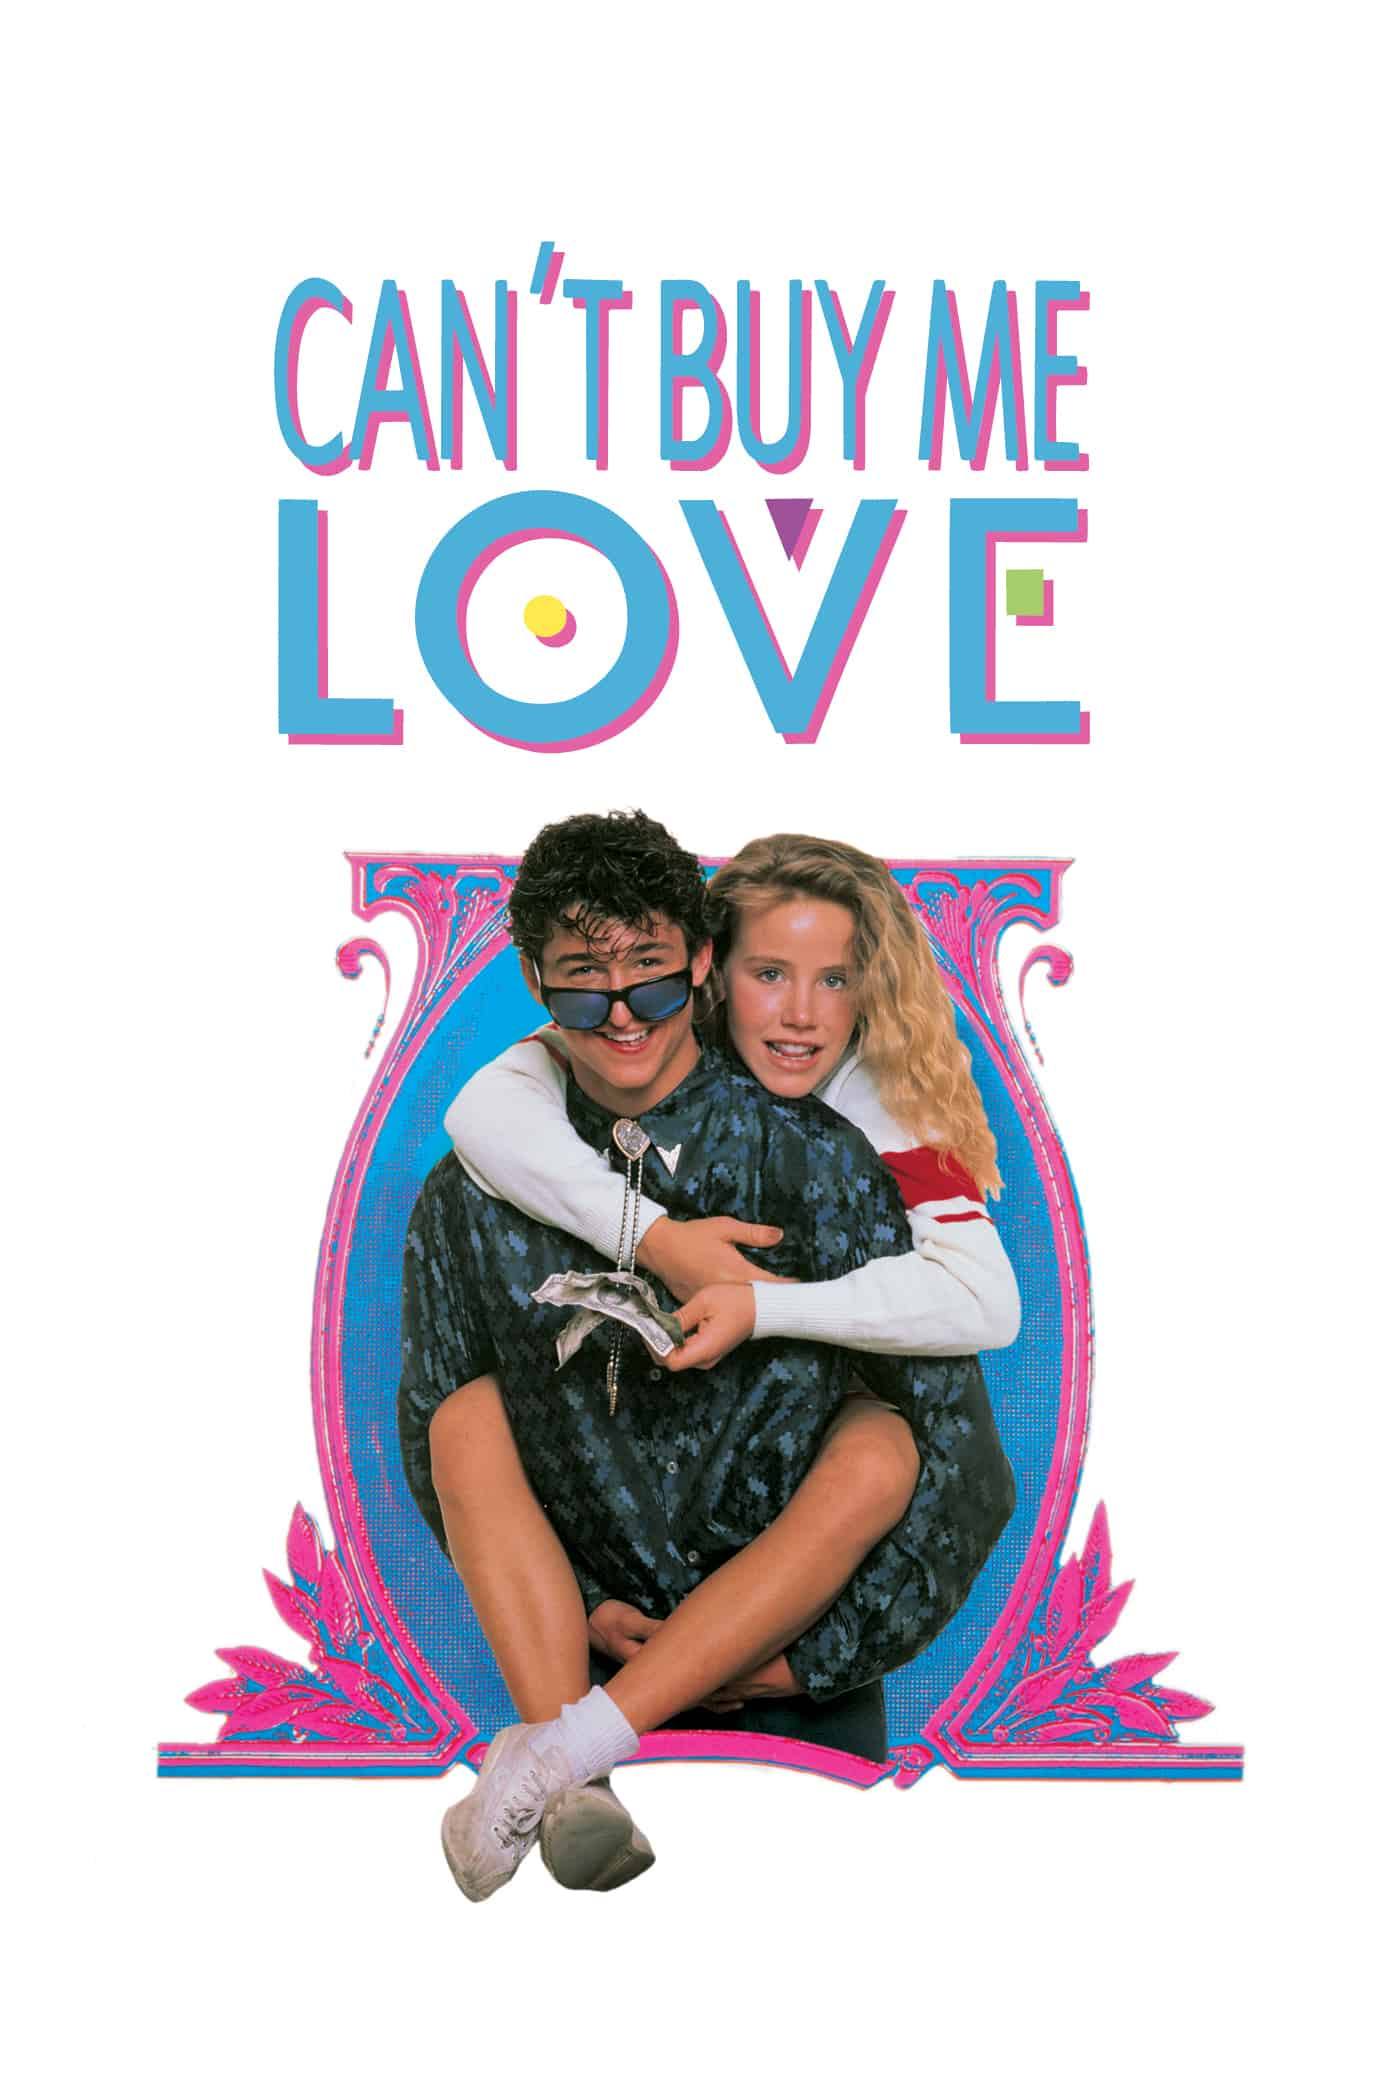 Can't Buy Me Love, 1987